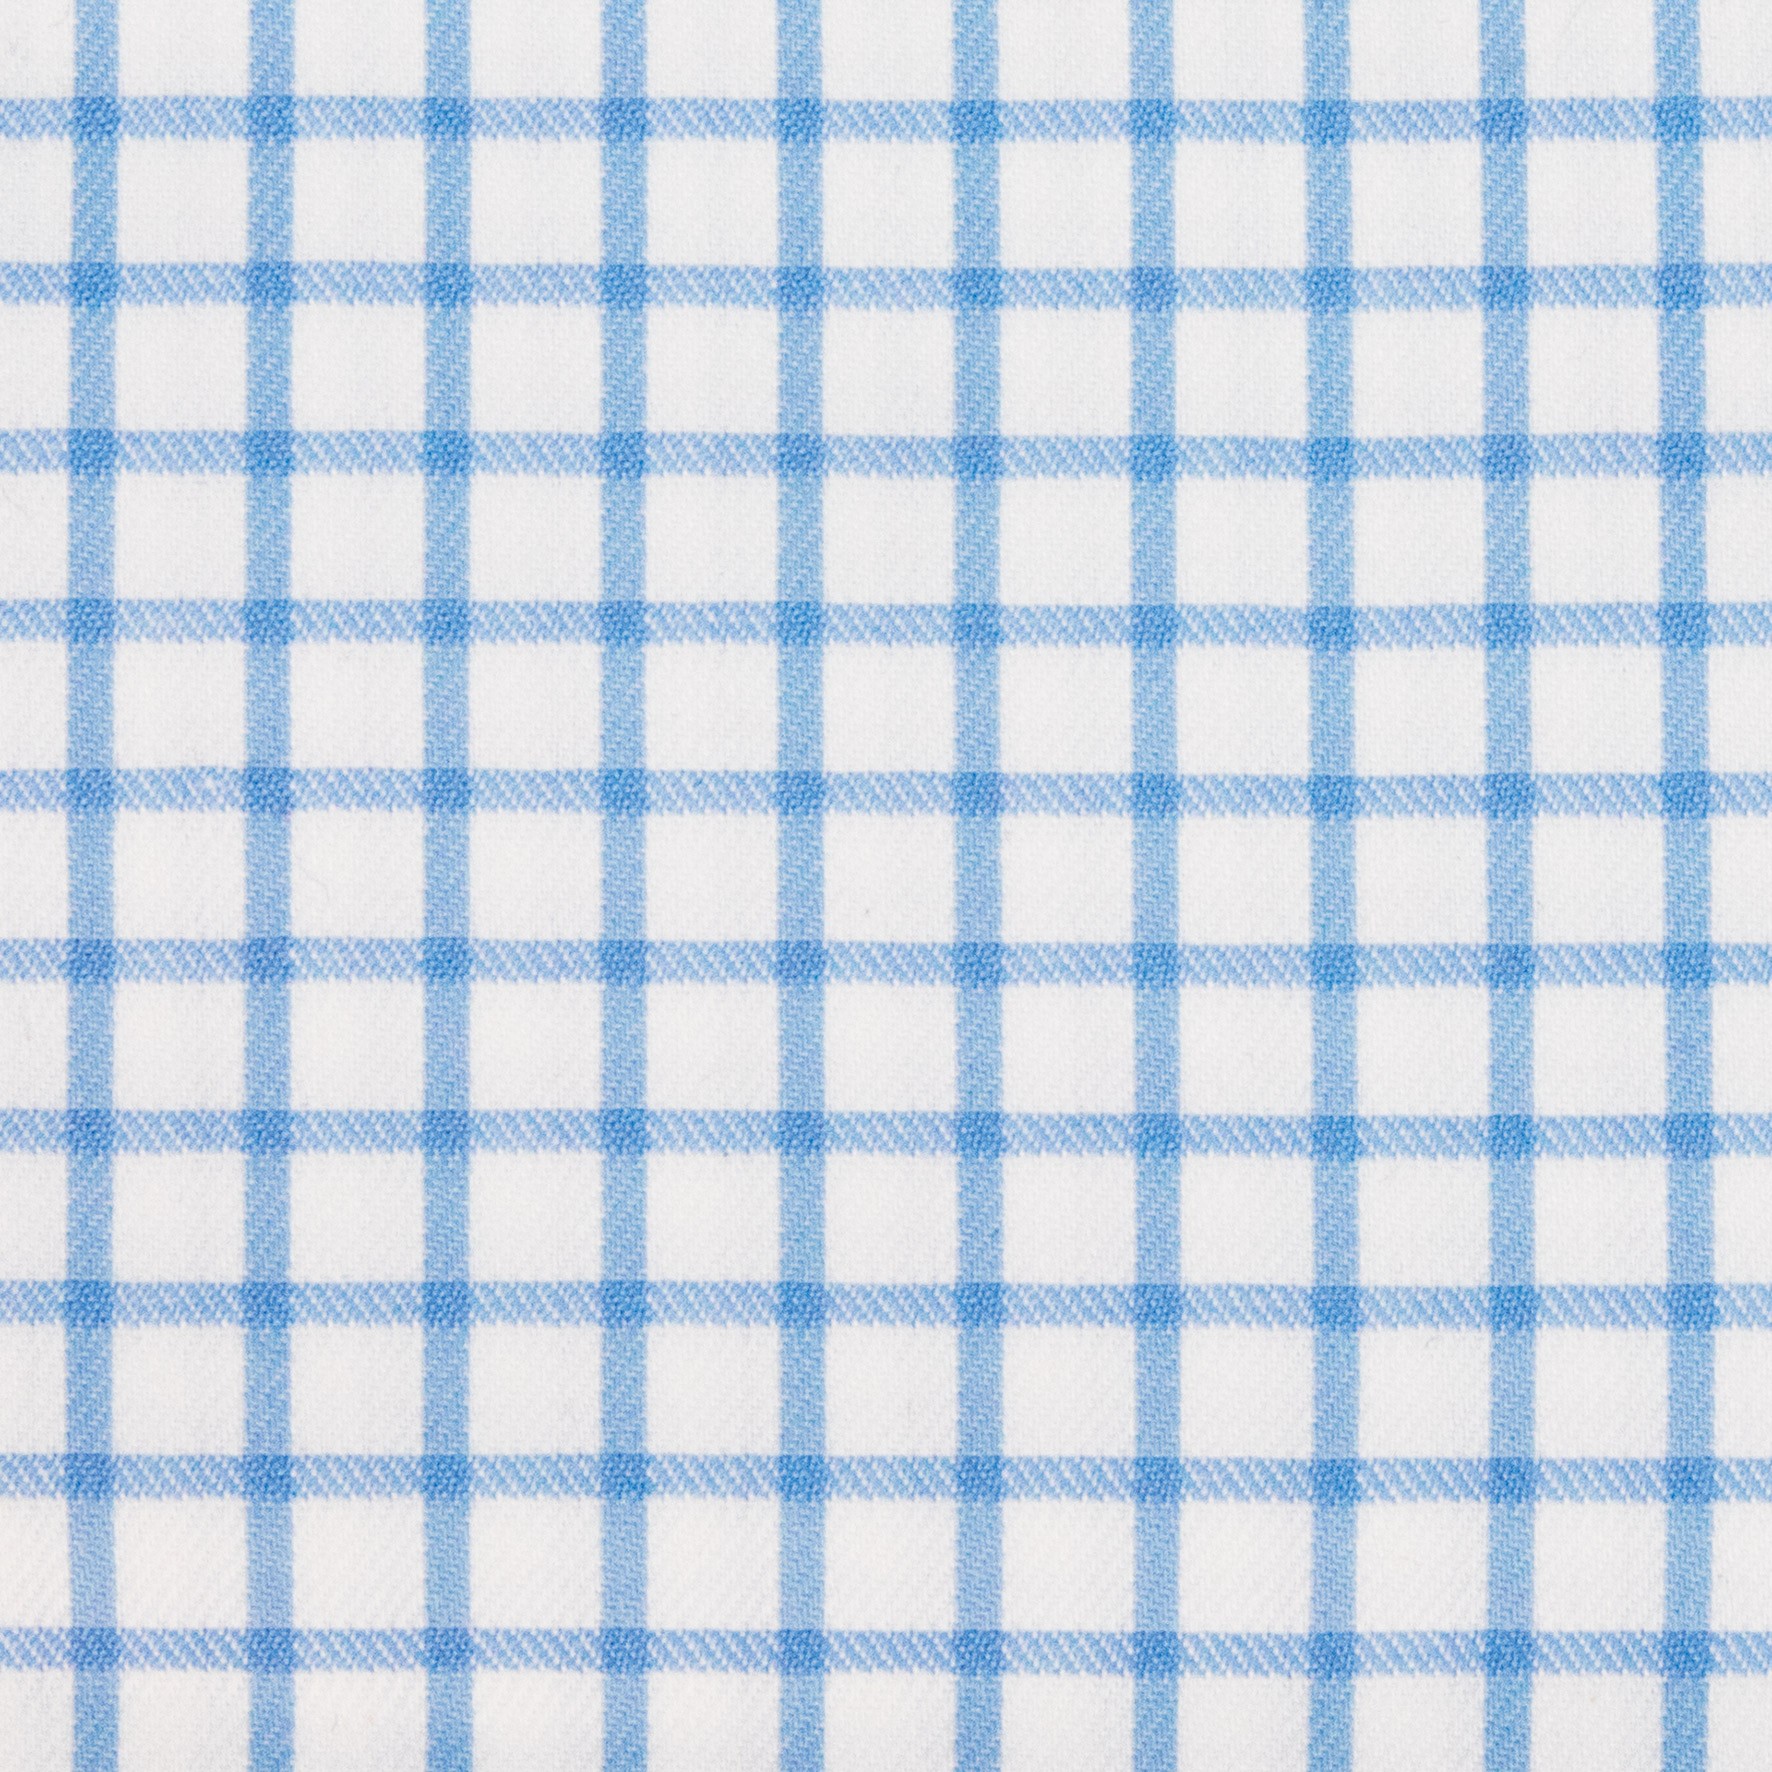 Buy tailor made shirts online - Antonio Range - Sky Blue Check